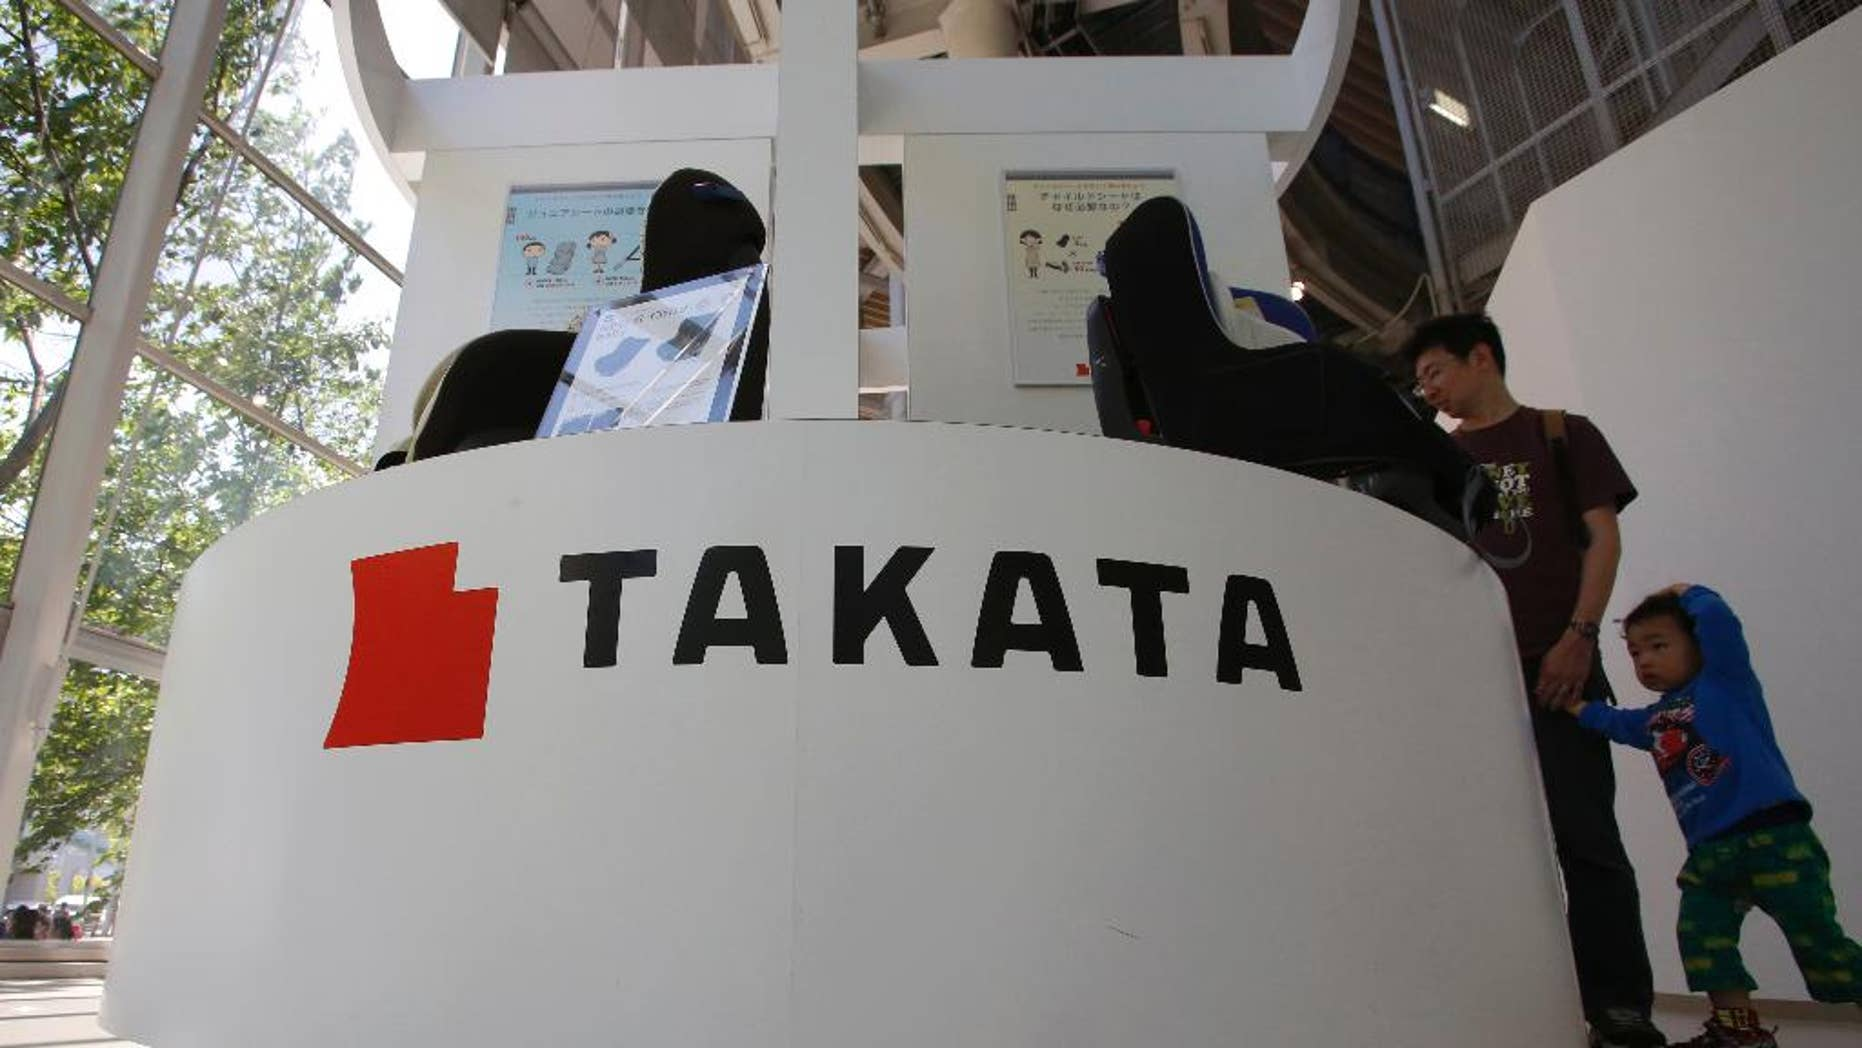 In this Wednesday, May 4, 2016 photo, visitors look at child seats manufactured by Takata Corp. at an automaker's showroom in Tokyo. Takata, the Japanese auto-parts maker behind a massive air-bag recall, is expecting a return to profit for the fiscal year through March 2017, although it just agreed to do more recalls. Tokyo-based Takata reported a 13 billion yen ($120 million) loss Wednesday, May 11, for the fiscal year ended March — the second straight year of red ink. (AP Photo/Shizuo Kambayashi)